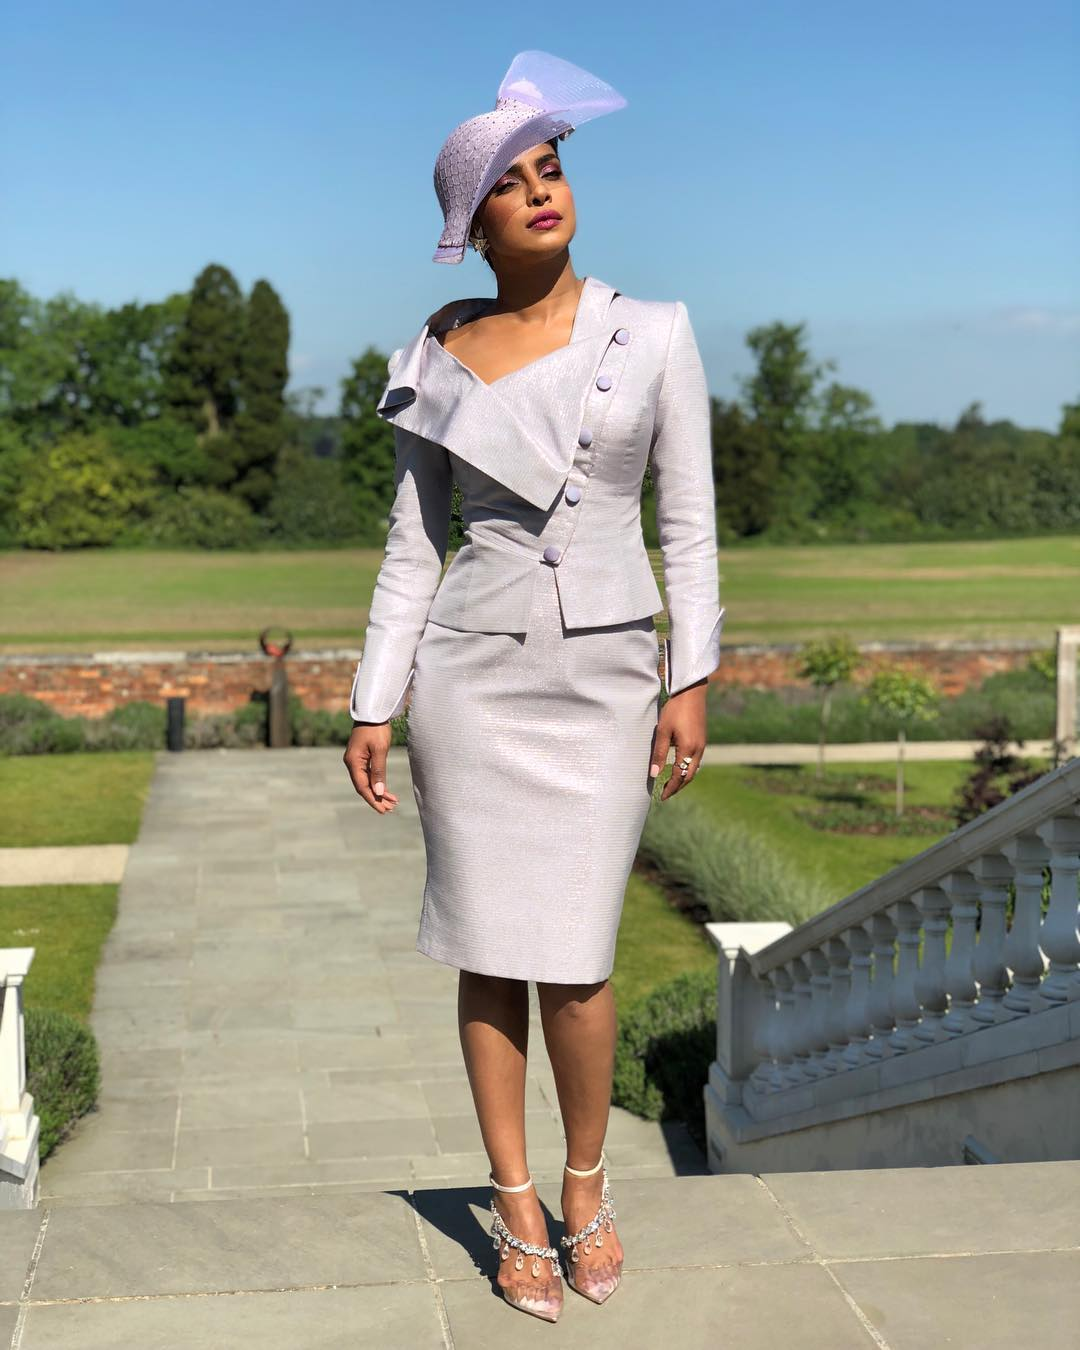 Priyanka Chopra wearing custom Vivienne Westwood to the royal wedding